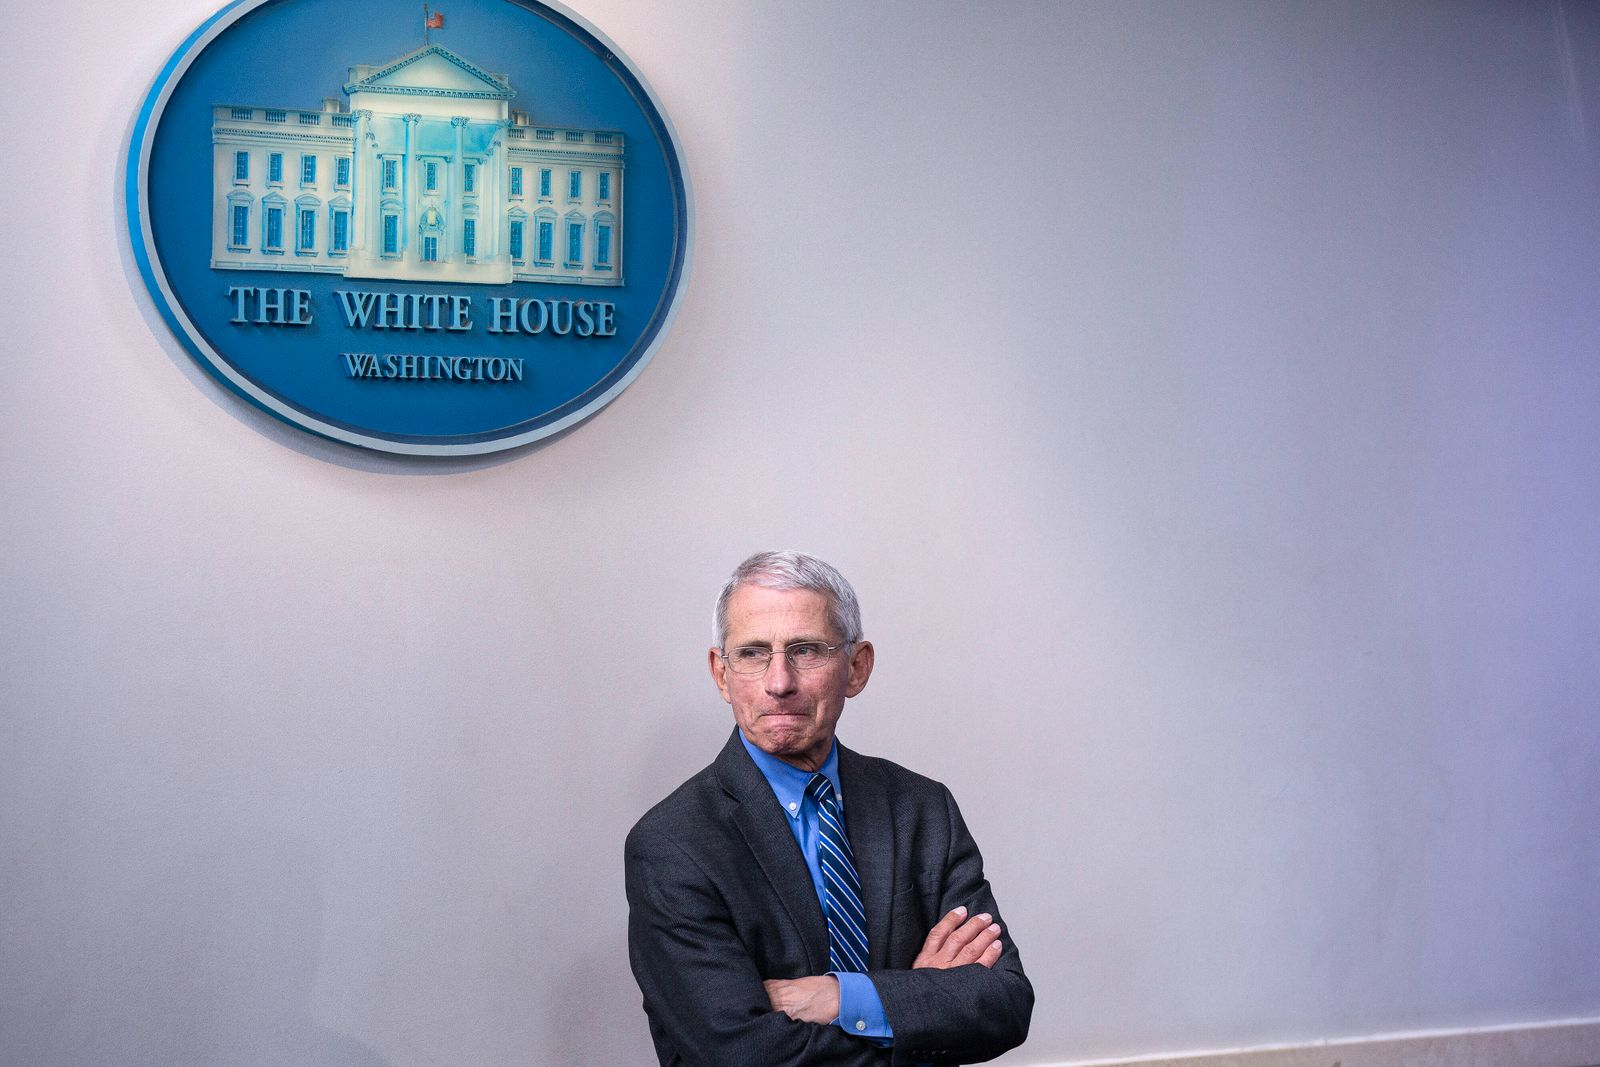 Anthony Fauci, director of the National Institute of Allergy and Infectious Diseases, arrives to the James S. Brady Pres